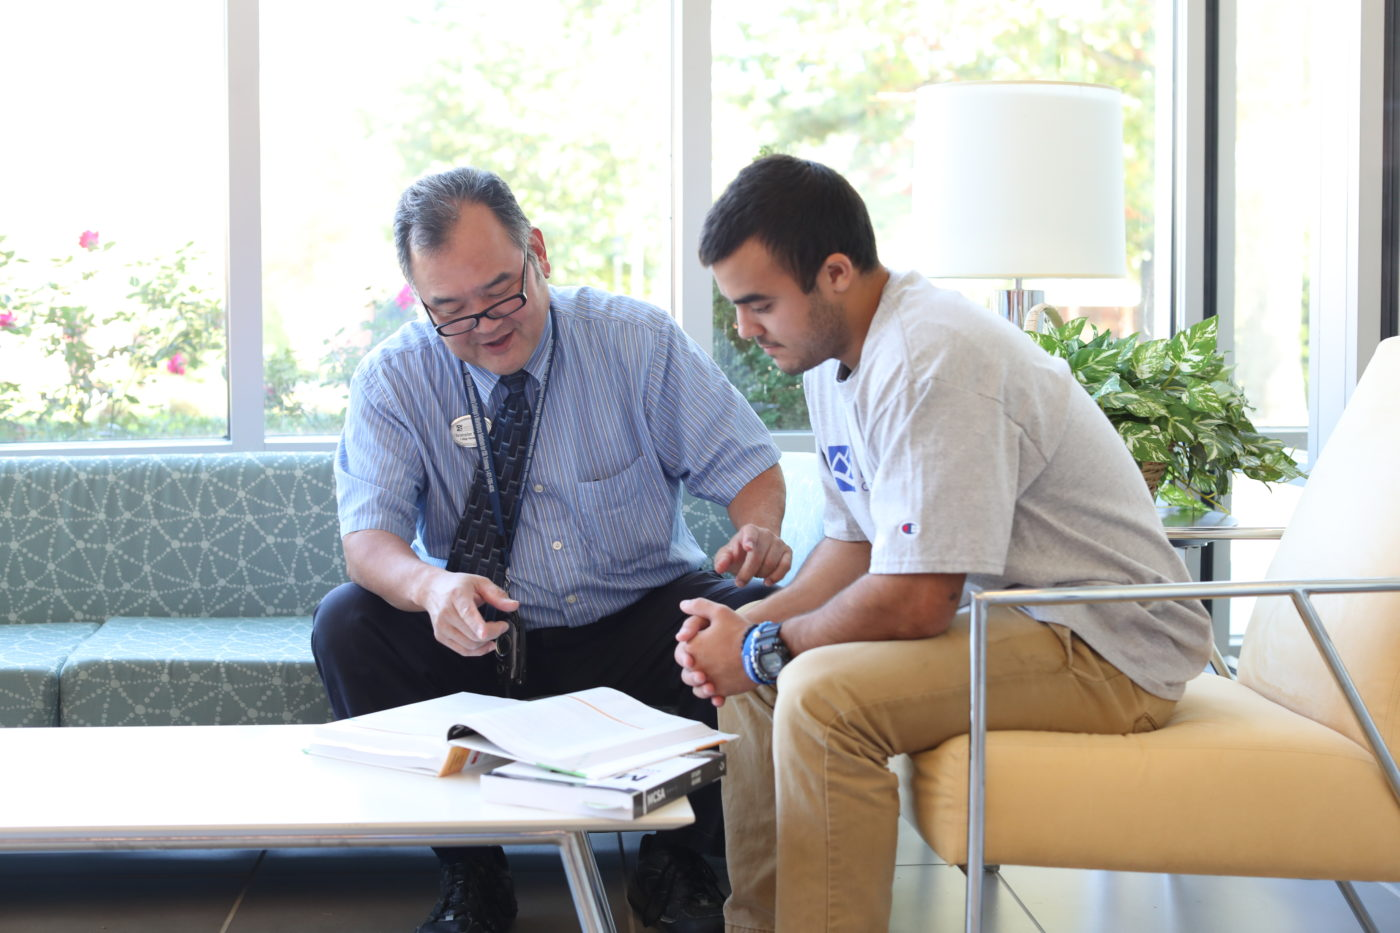 A college student receives guidance from faculty at Dabney S. Lancaster Community College at the Rockbridge Regional Center in Clifton Forge, VA.